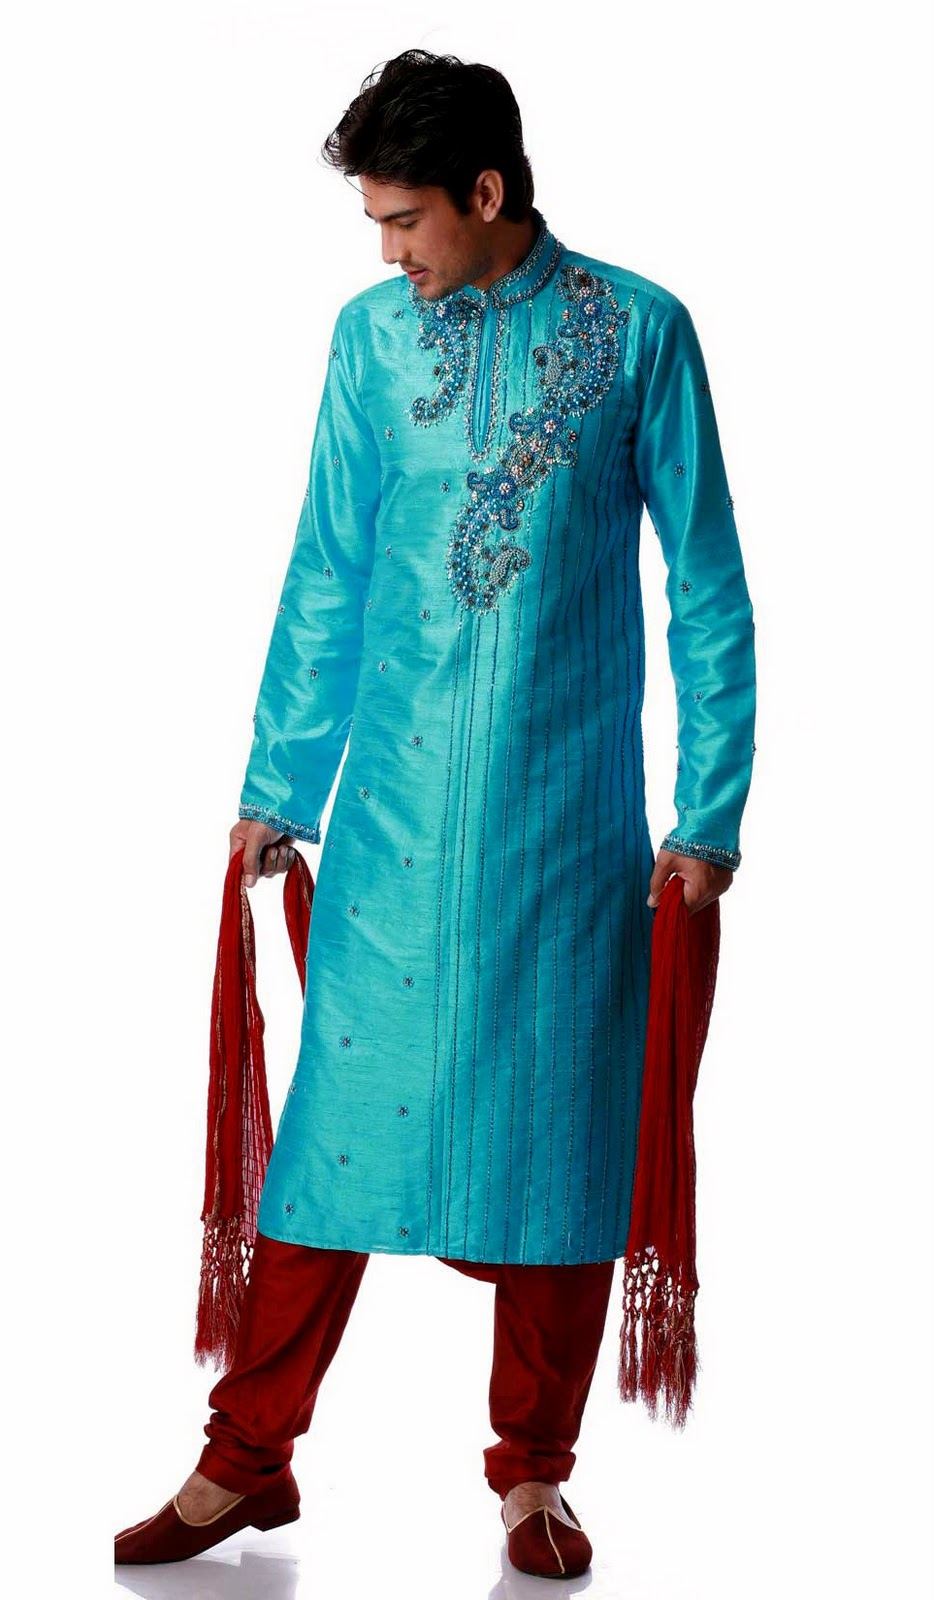 Wedding Sherwani And Kurta Pajama Collection 2012 | Indian Sherwani ...